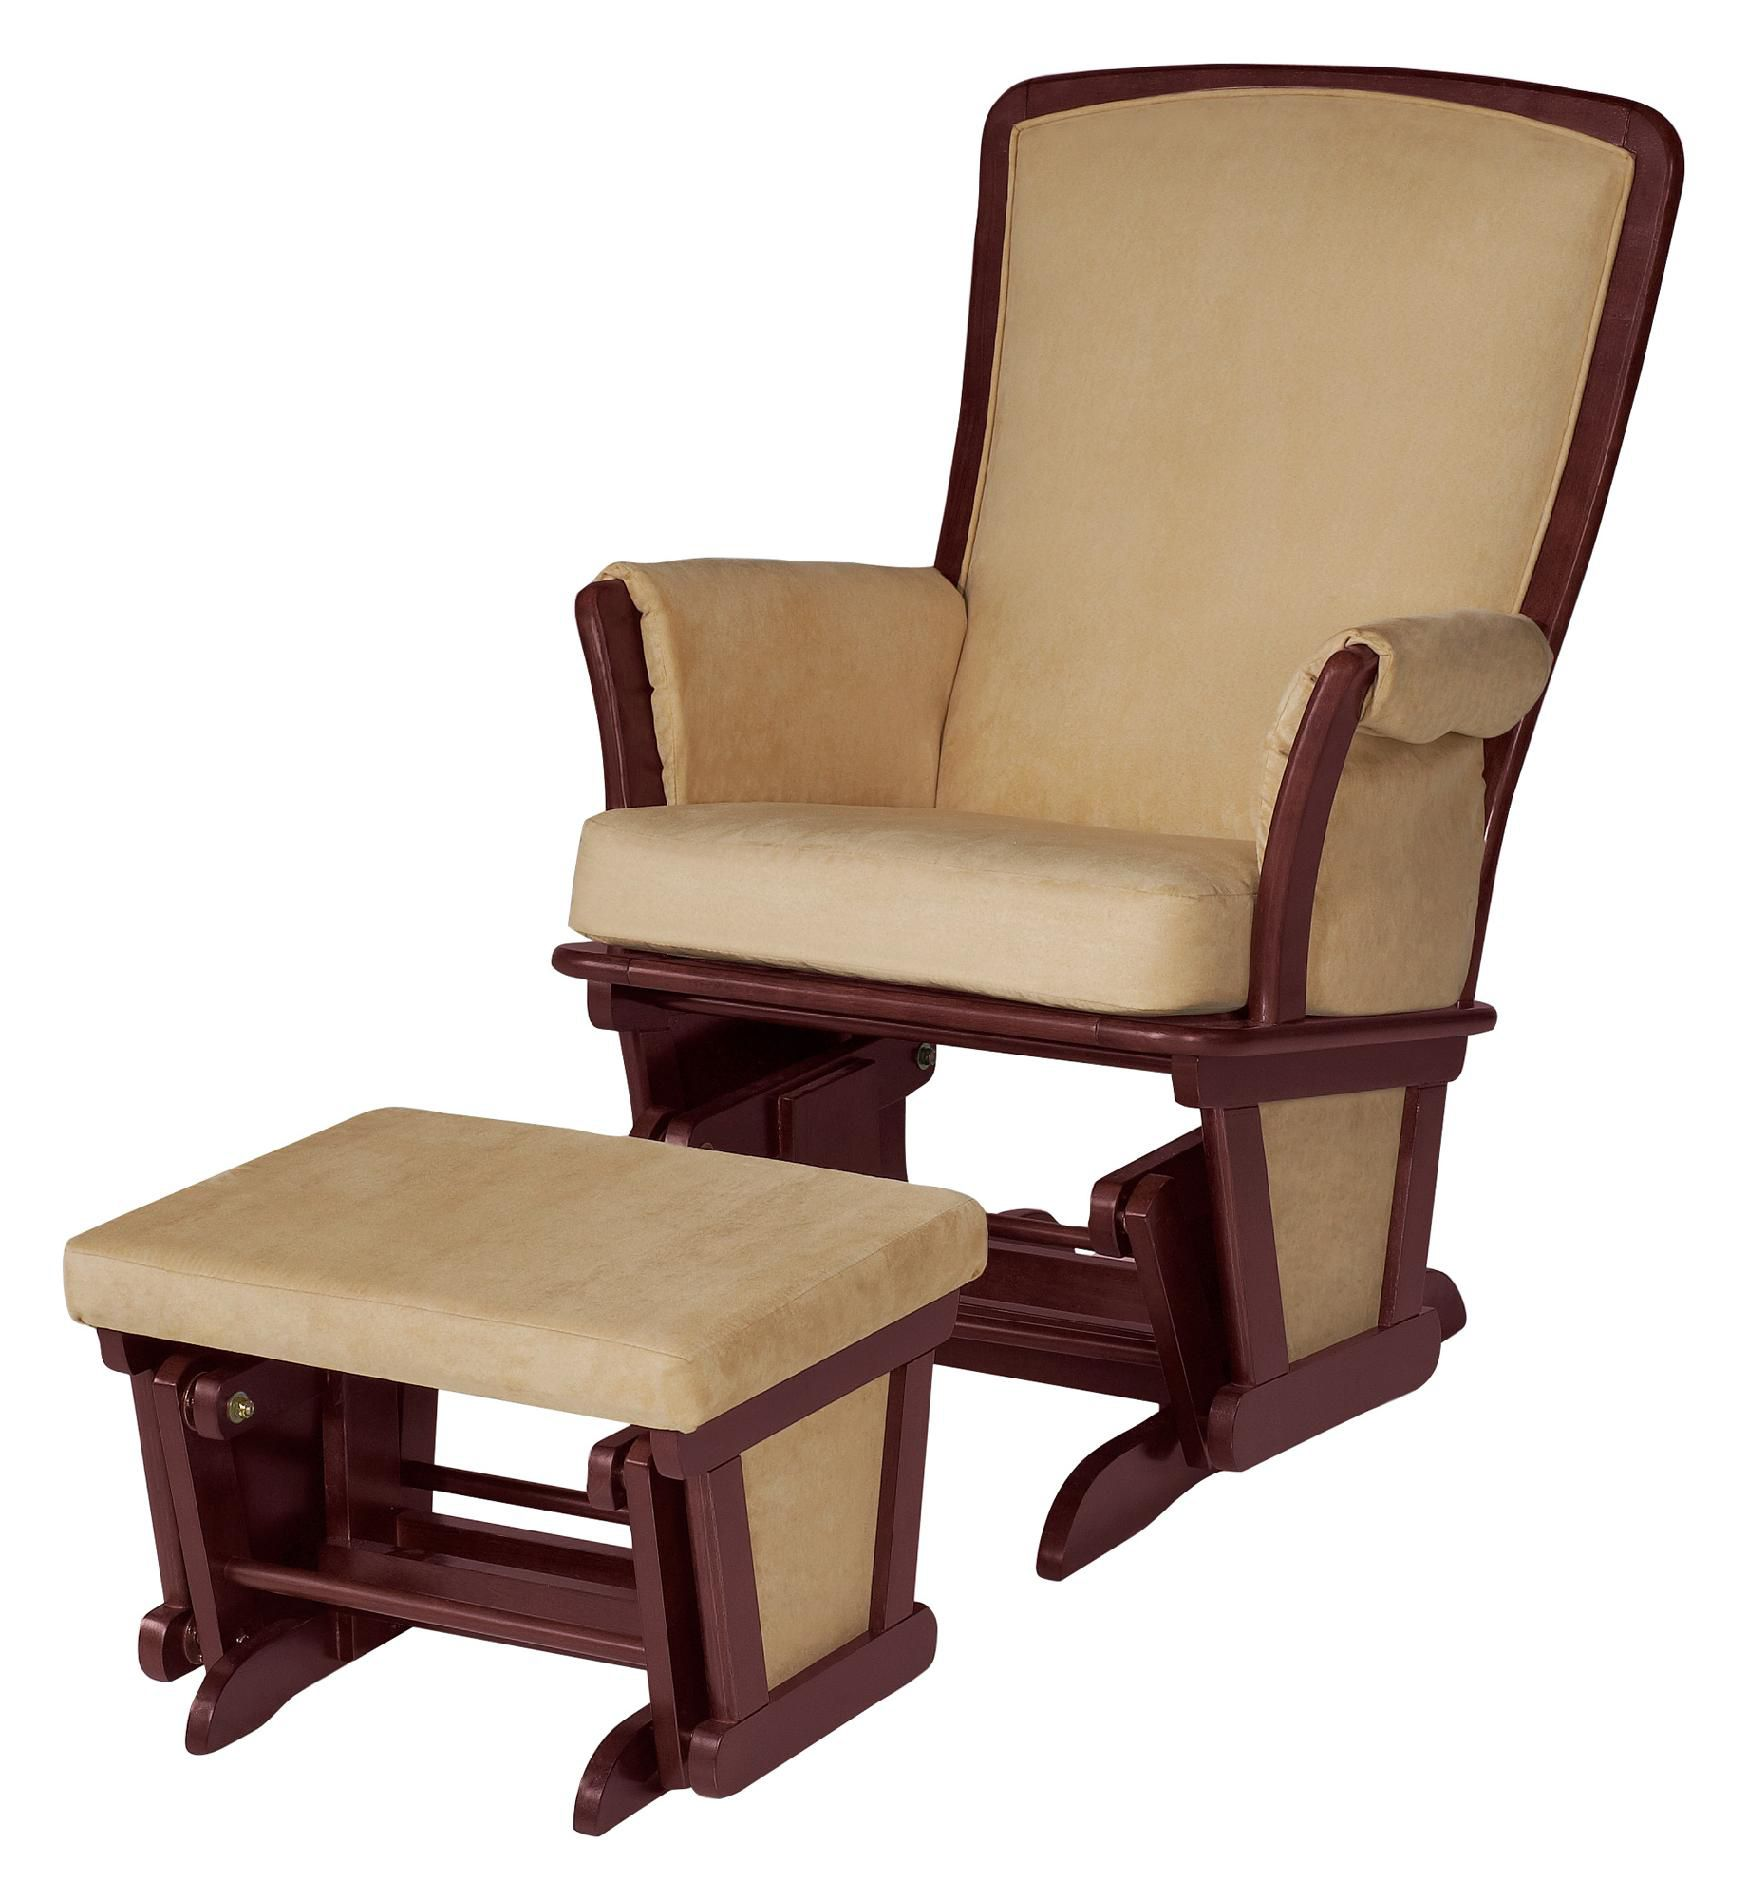 kids upholstered rocking chair modern stackable outdoor chairs delta children glider and ottoman chocolate